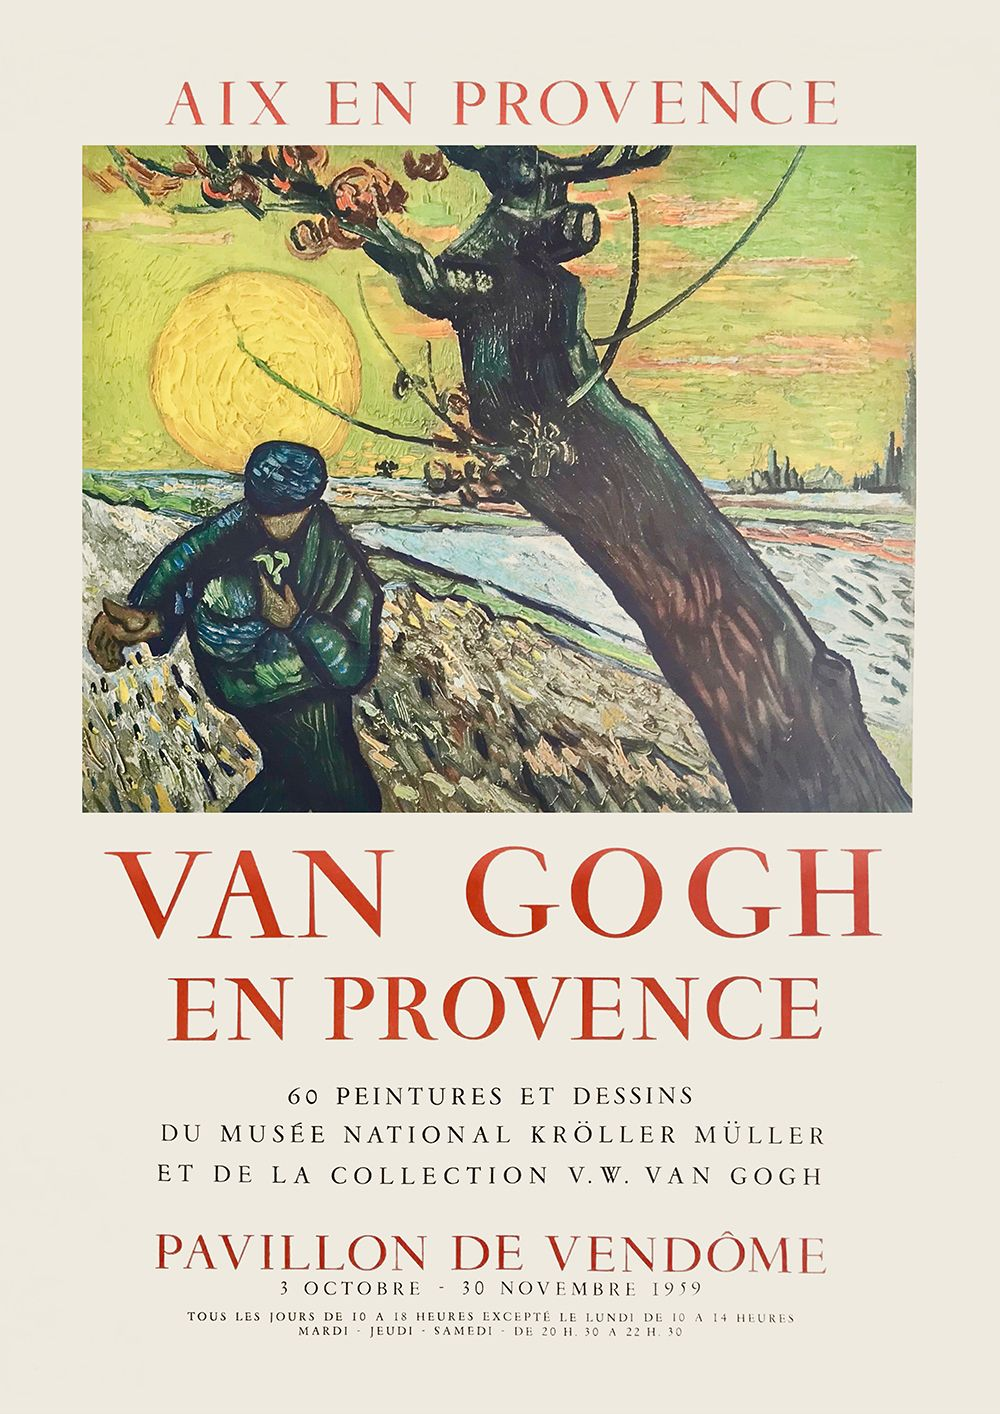 Vincent Van Gogh Exhibition Poster Van Gogh In Provence At The Pavilion Of Vendome 1959 Art Exhibition Posters Van Gogh Exhibition Exhibition Poster